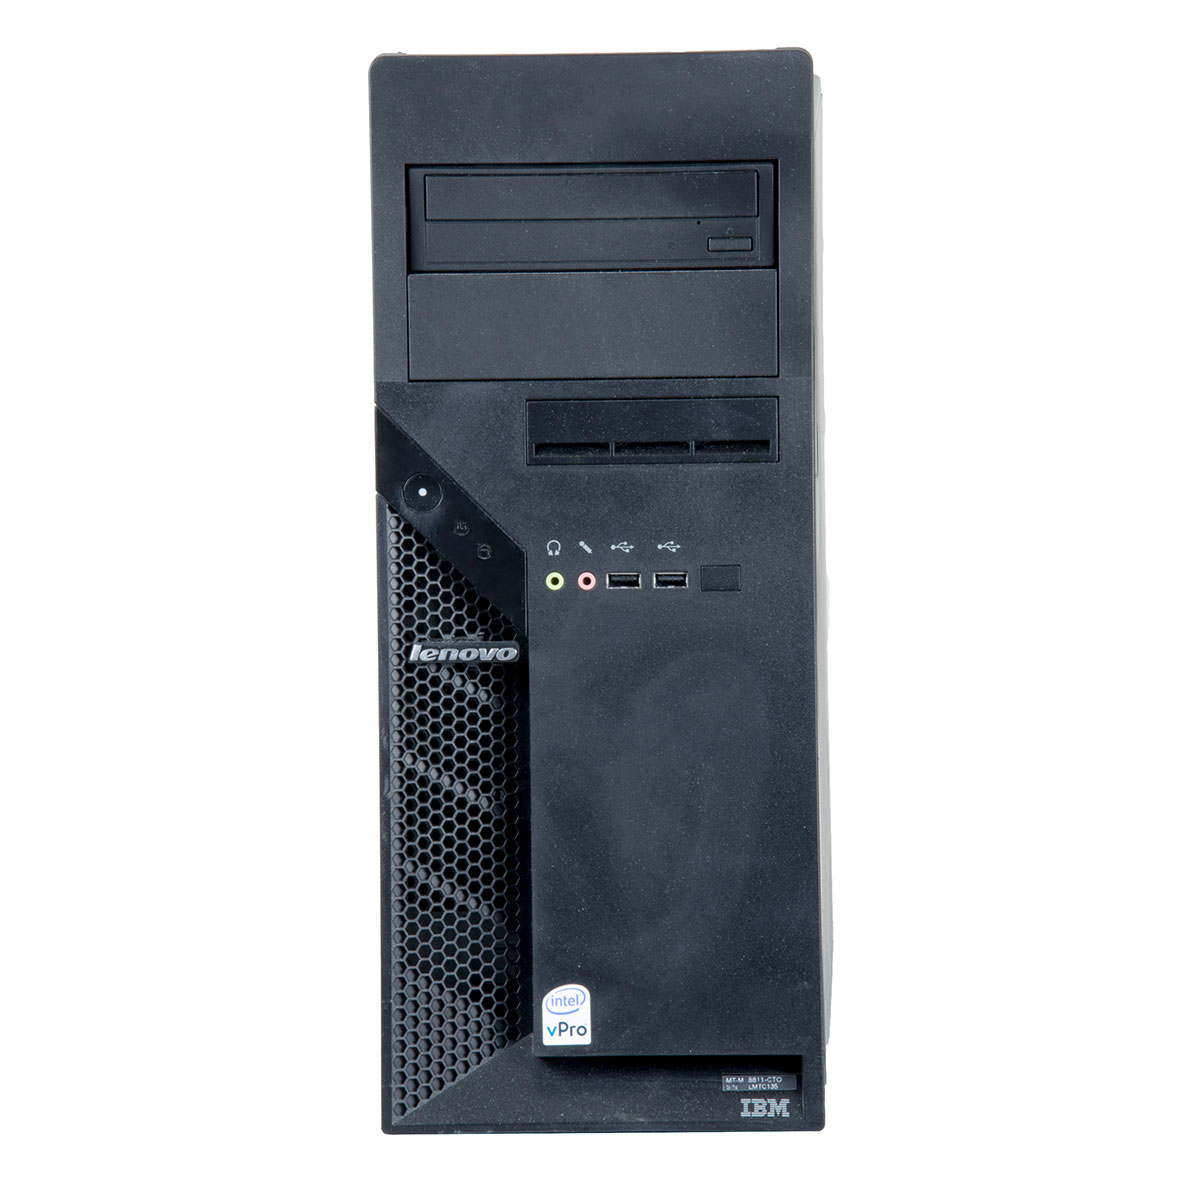 Lenovo Thinkcentre M55e Intel Pentium Dual Core E2140 1.60 Ghz 4 Gb Ddr 2 250 Gb Hdd Dvd-rom Tower